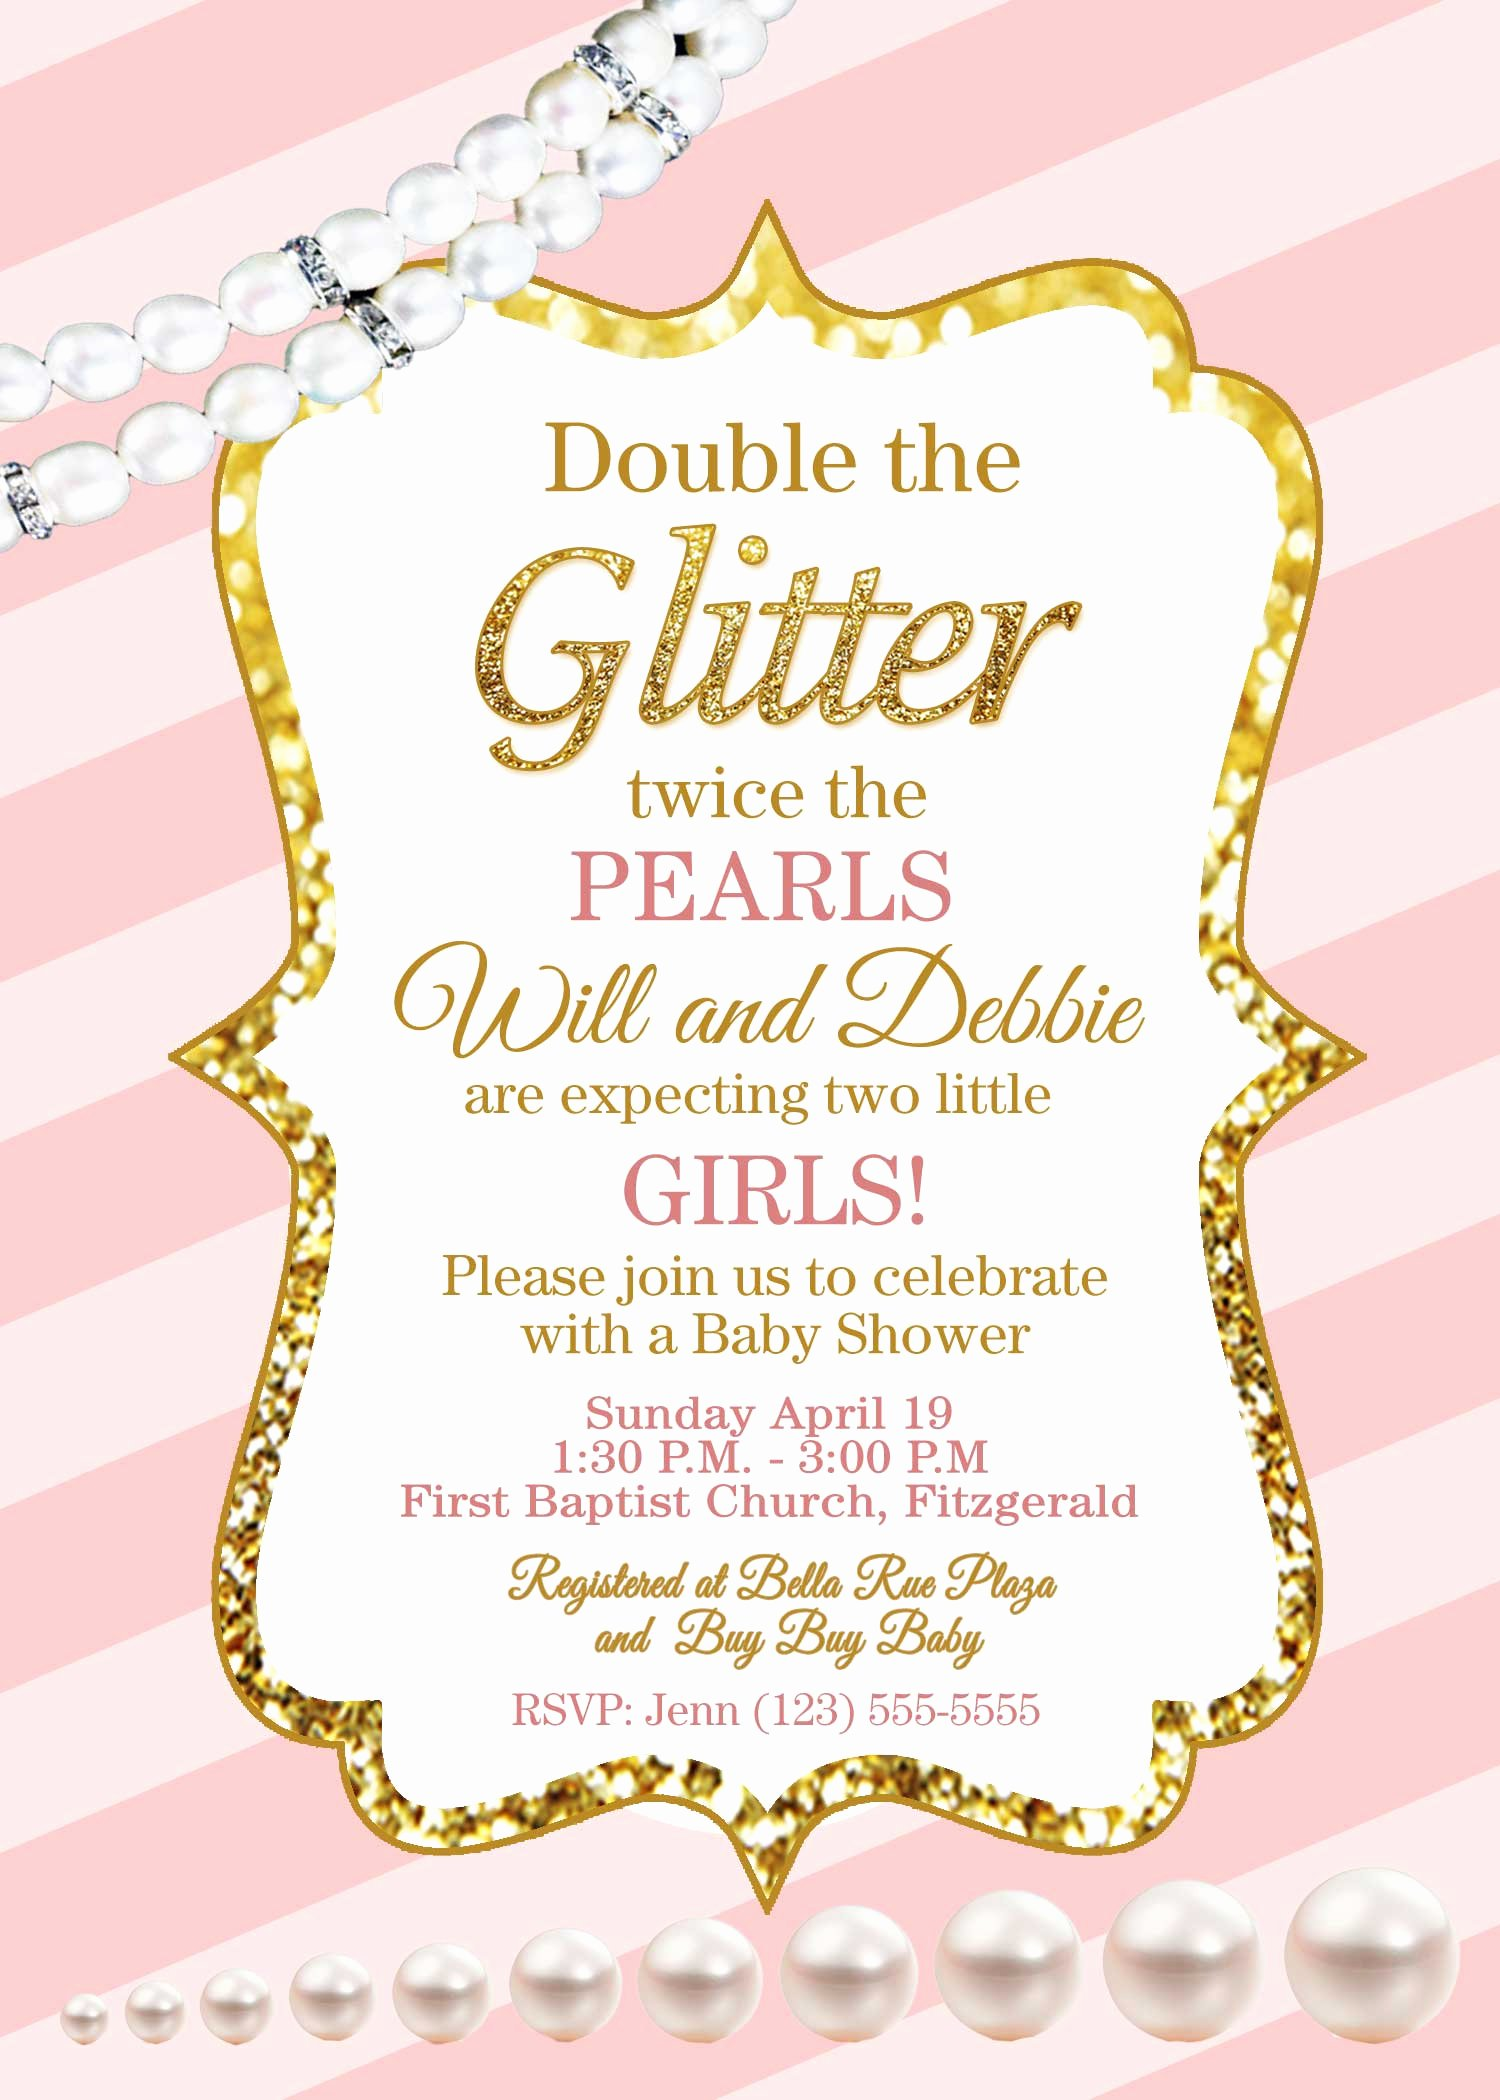 Pink and Gold Invitations Templates Luxury Giltter and Pearls Pink and Gold Baby Shower Invite